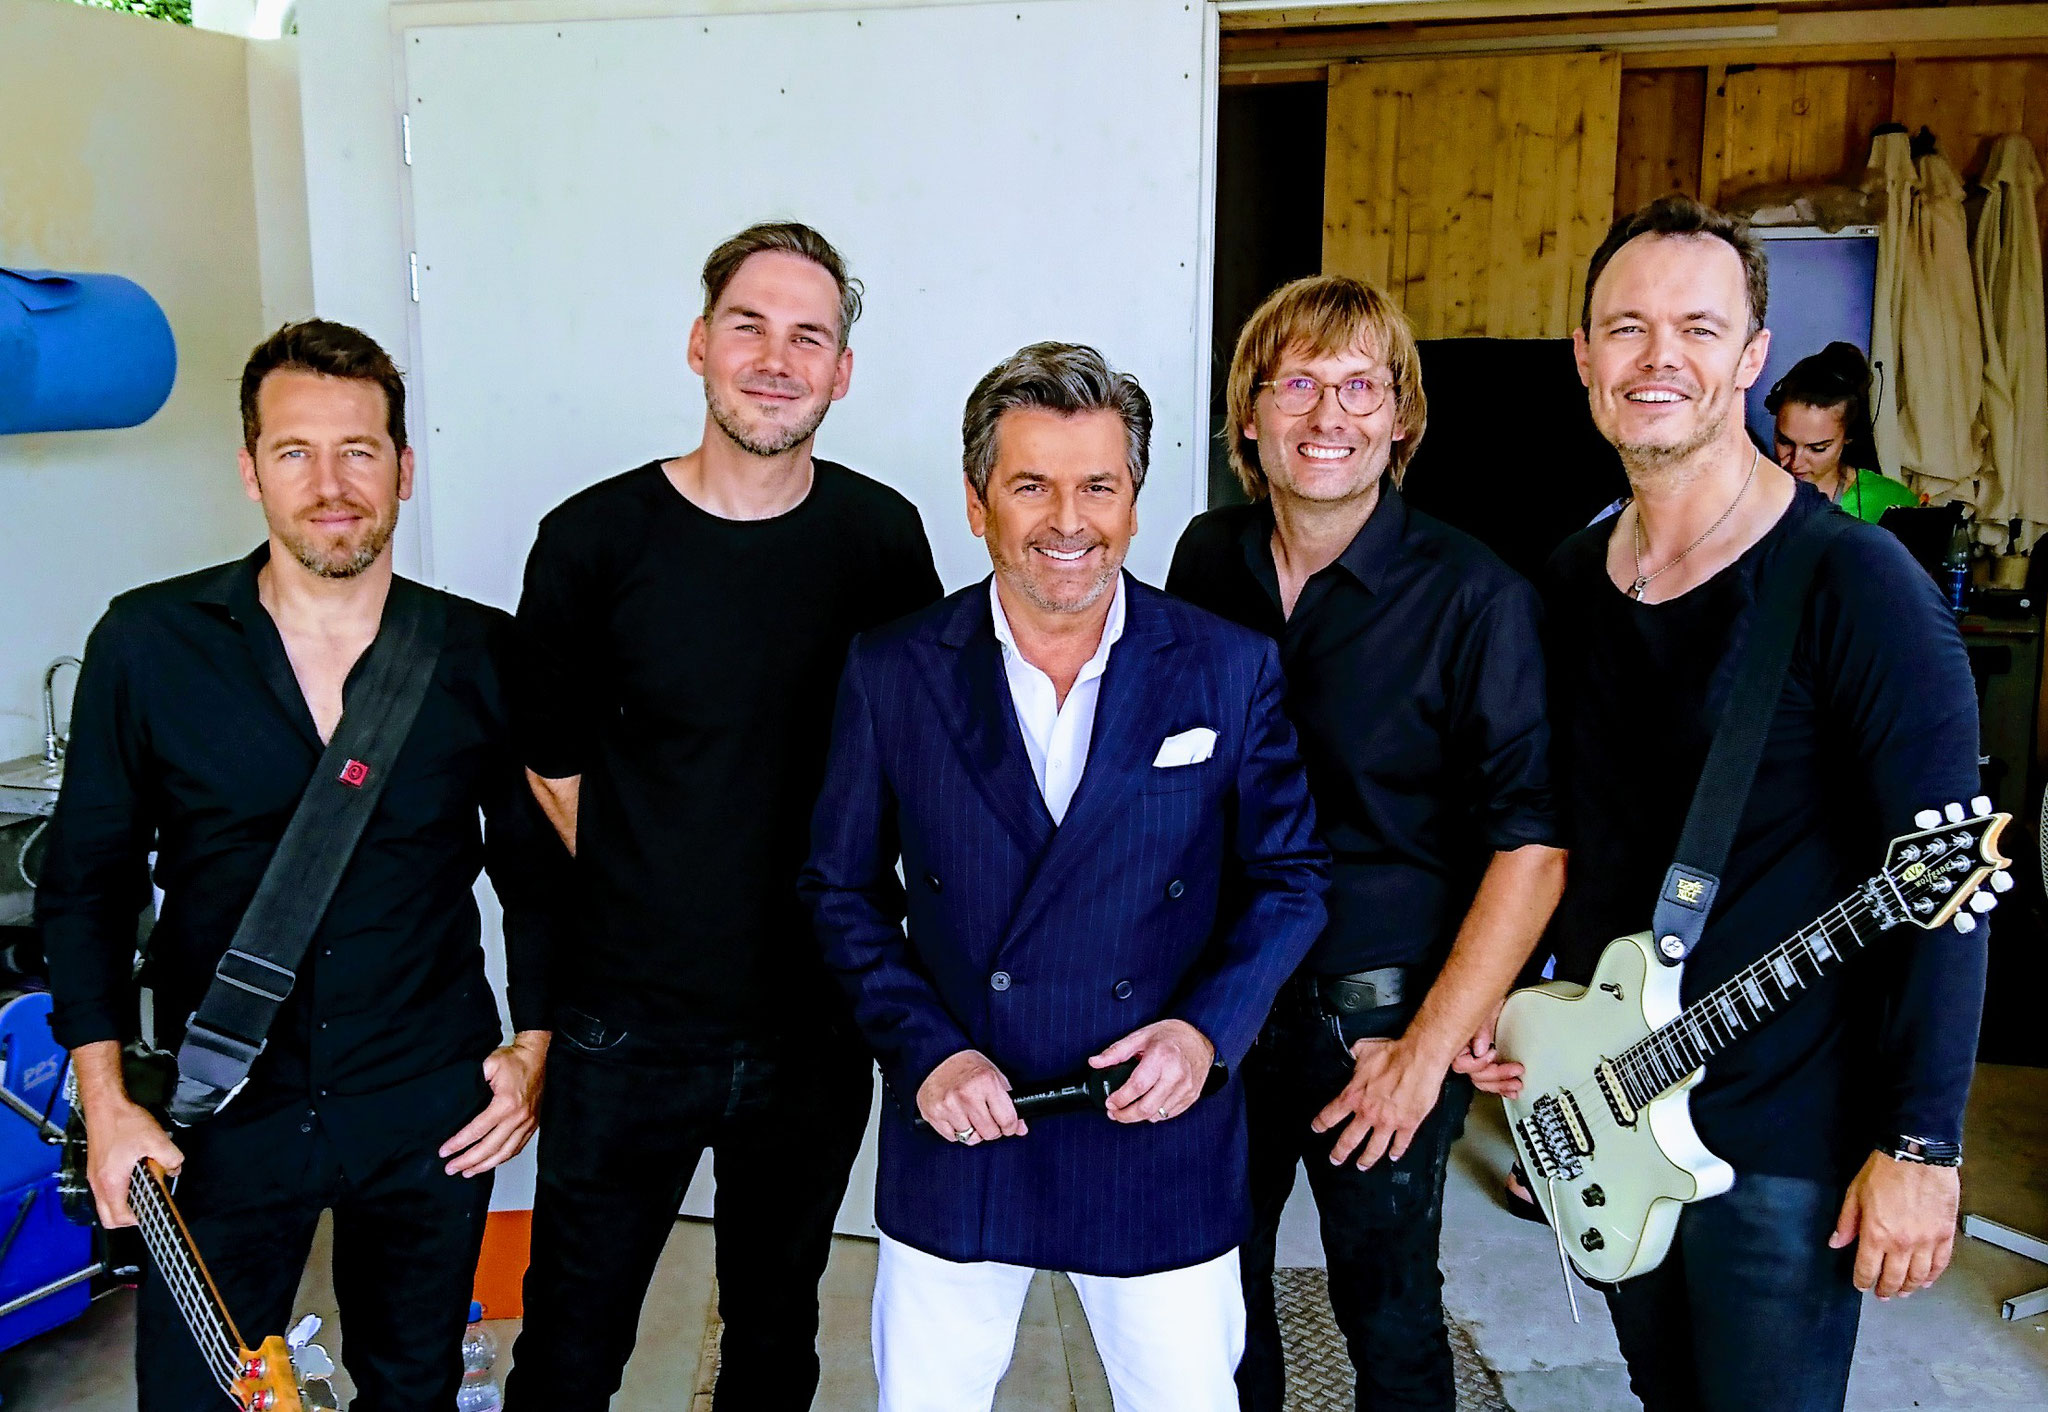 Damian & Thomas Anders